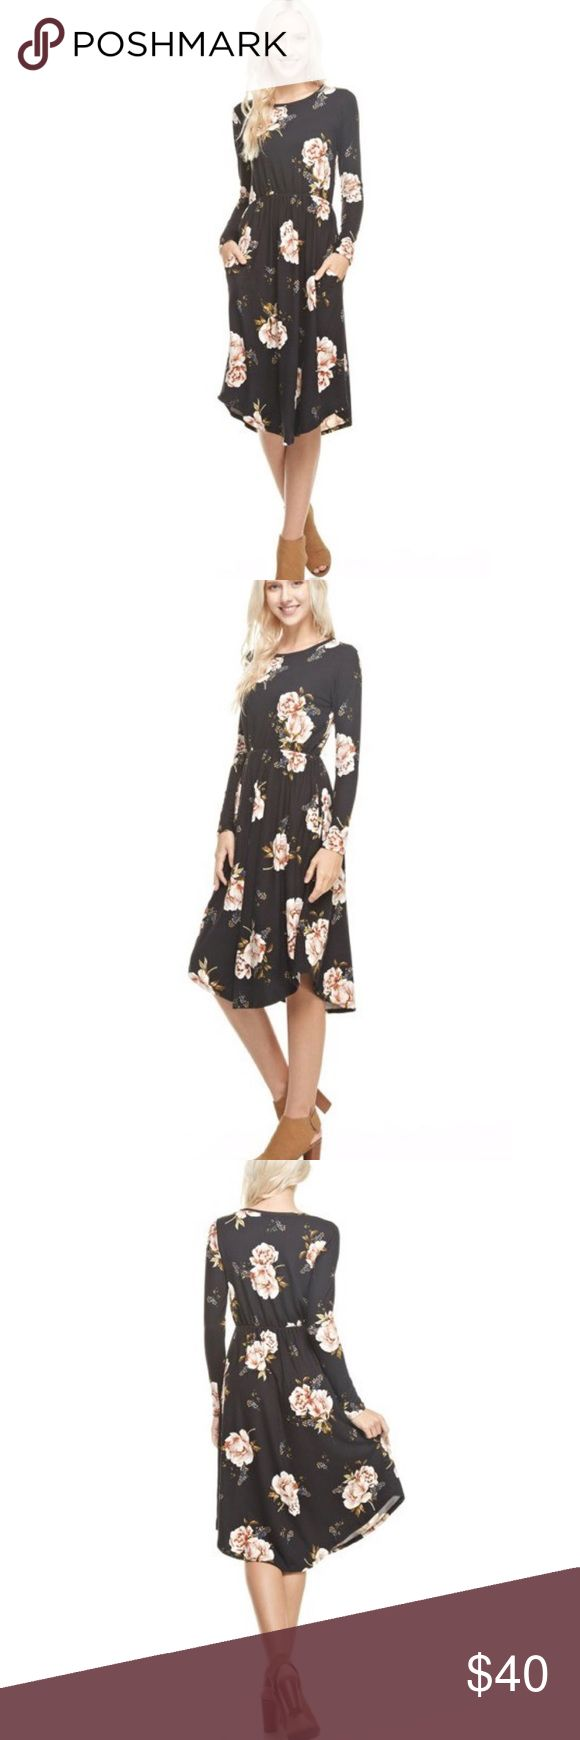 NEW! Black & Burgundy Floral Midi Pocket Dress Arrives This Week!!! Best Selling Dress Black & Burgundy Floral Midi Round Hem Pocket Dress. Fabric: 95% Poly & 5% Spandex. Made in USA. No Trades. Price is Firm Unless Bundled 2 Items 10% Off or 3 Items 15% Off.  ***Please Note This picture if for Black & Olive Floral, Black & Burgundy pictures are coming soon. GlamVault Dresses Midi